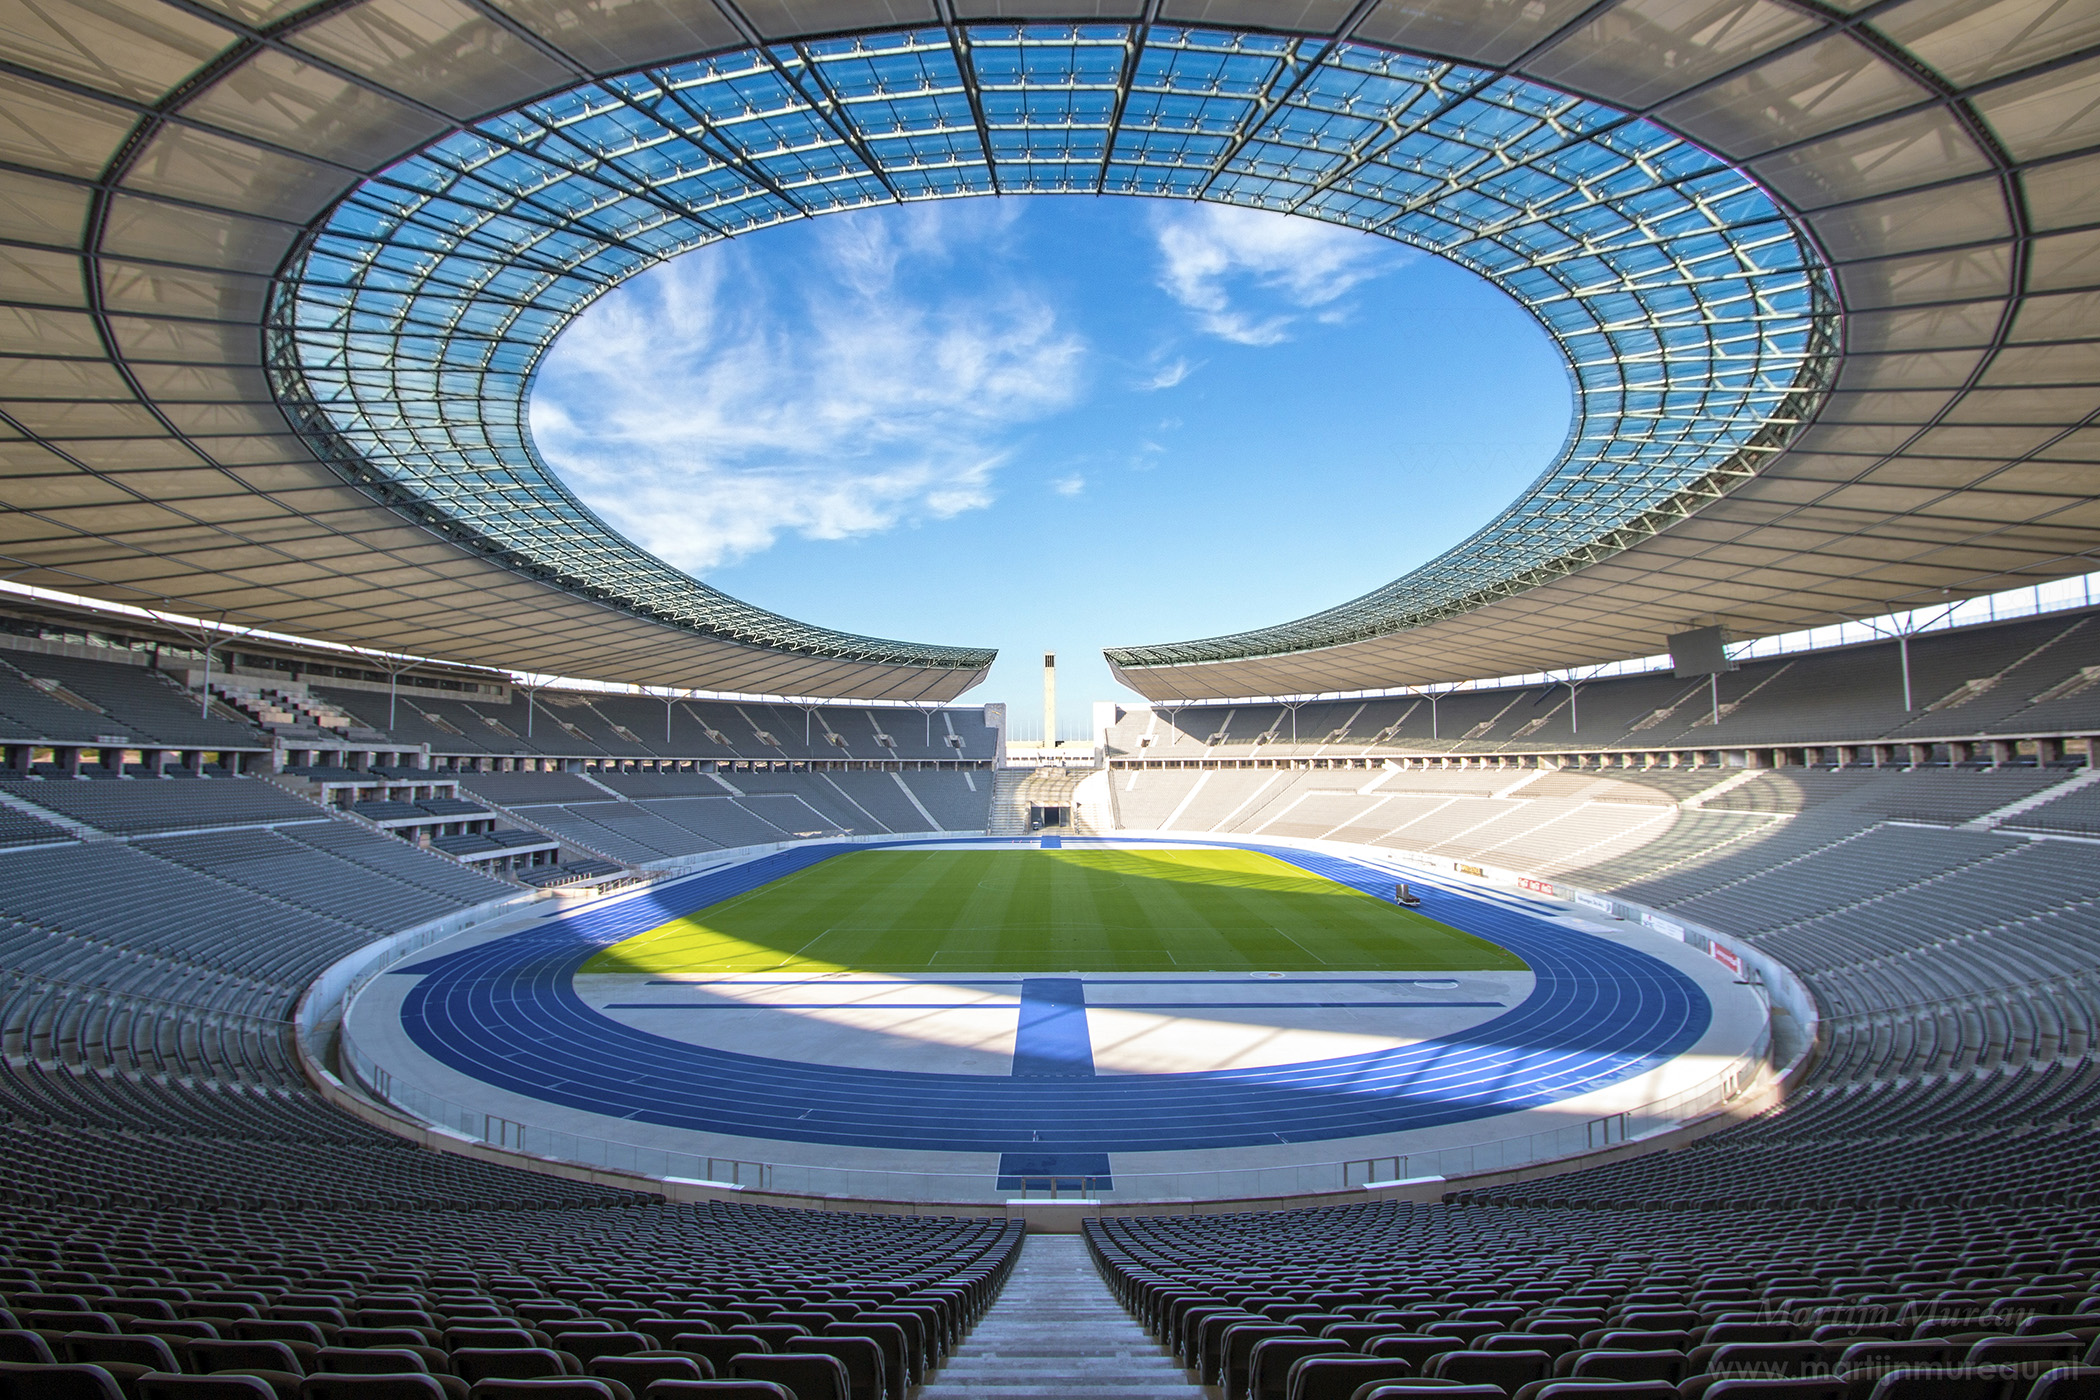 Olympiastadion stadium guide by Tablebox